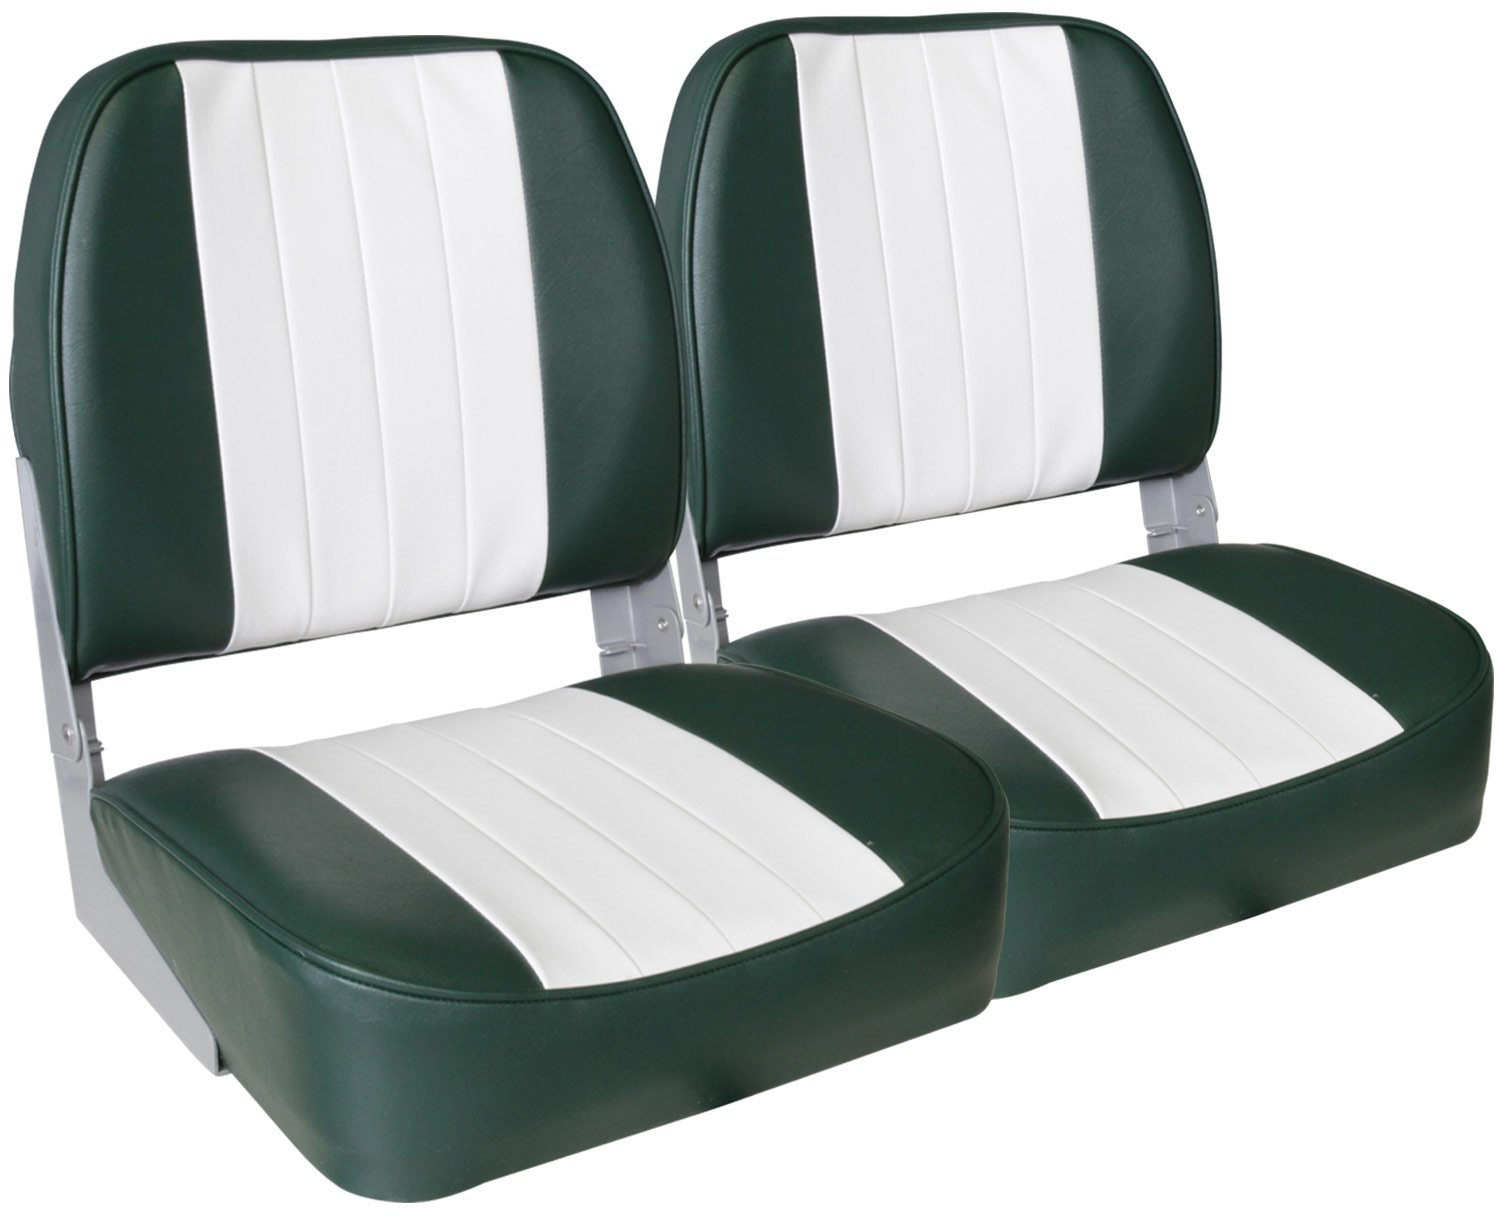 Leader Accessories A Pair of New Low Back Folding Boat Seats(2 Seats) (White/Green) by Leader Accessories